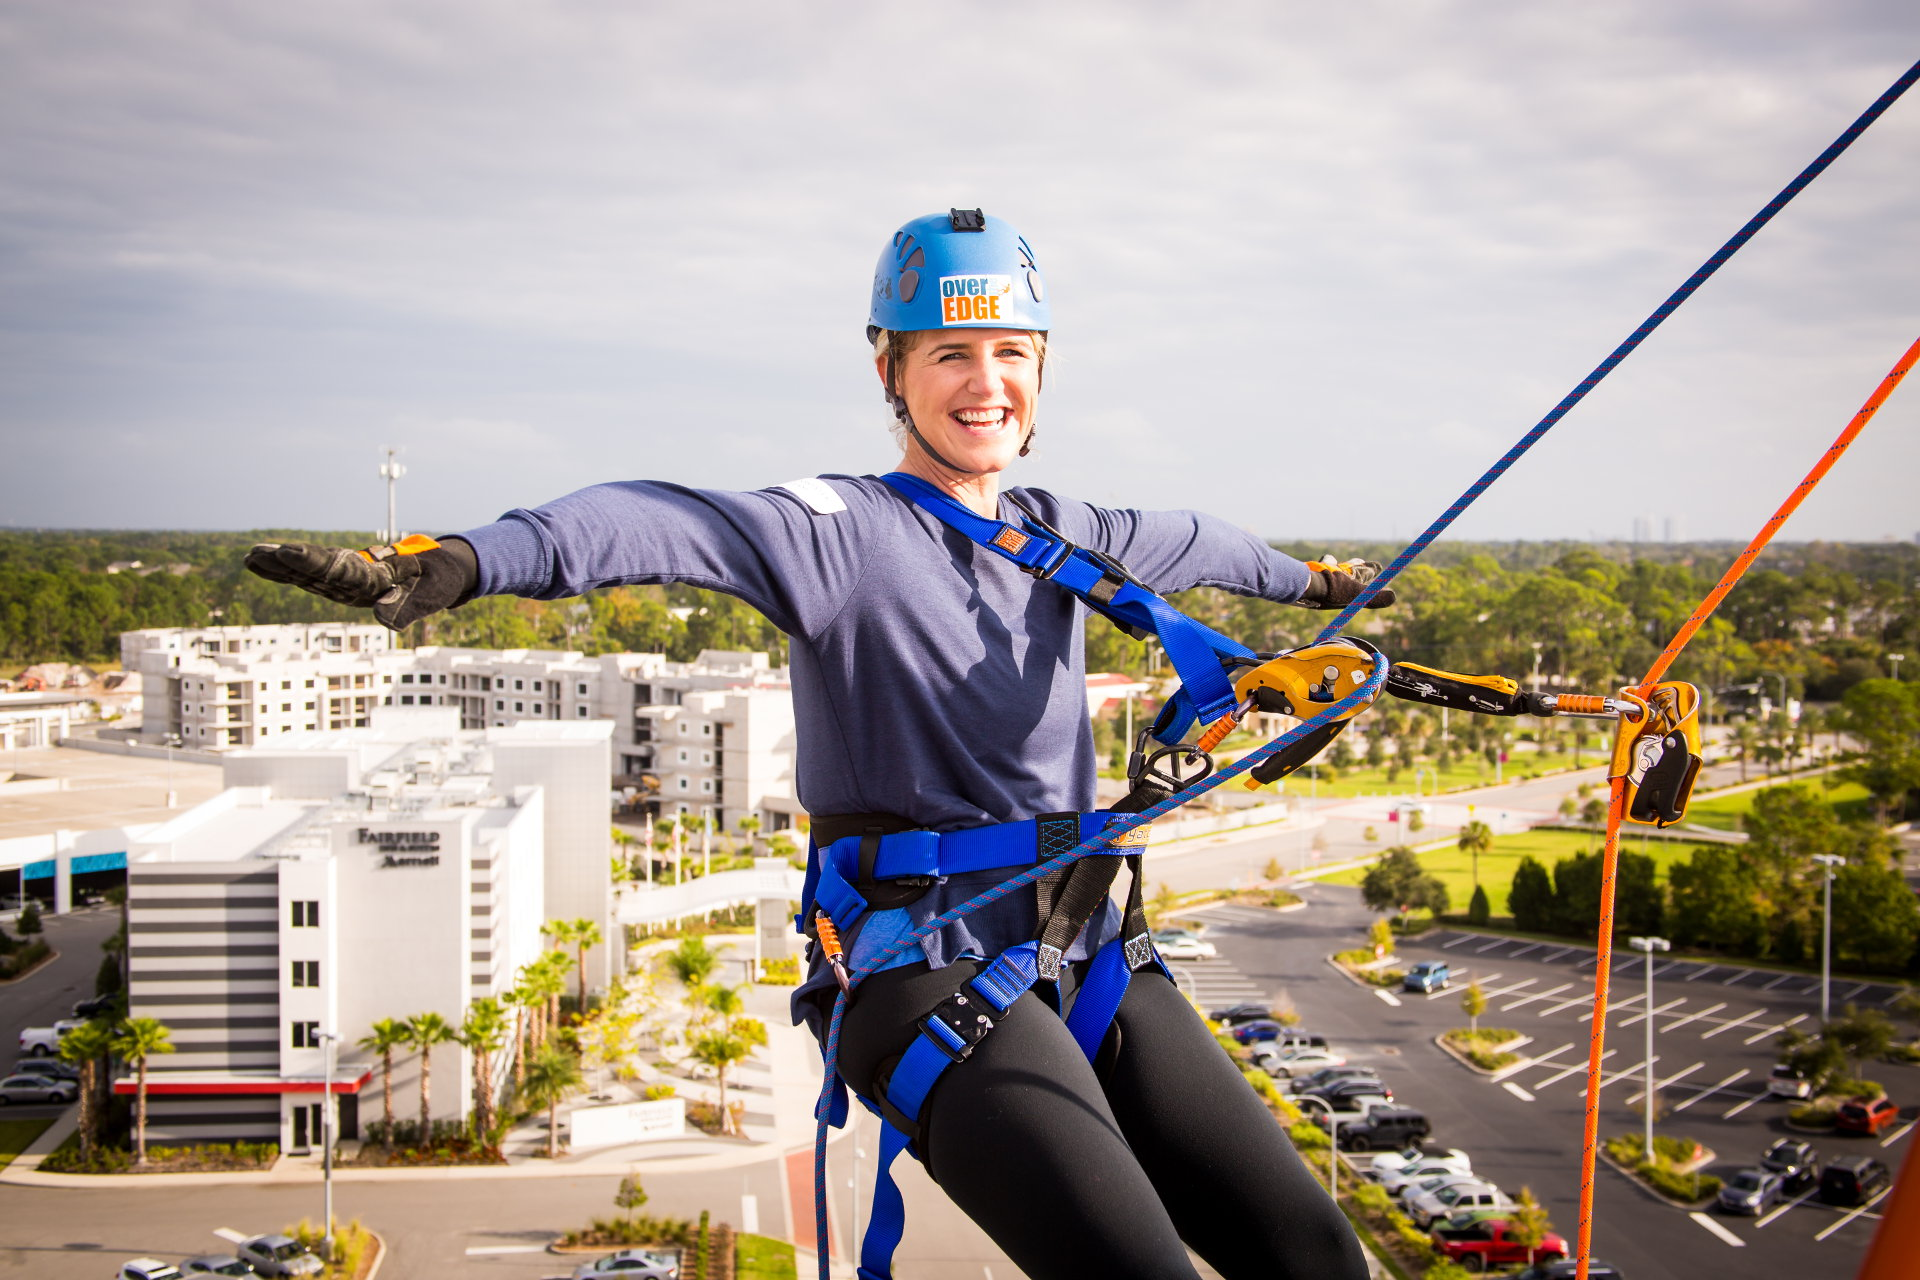 Go Over The Edge Daytona!